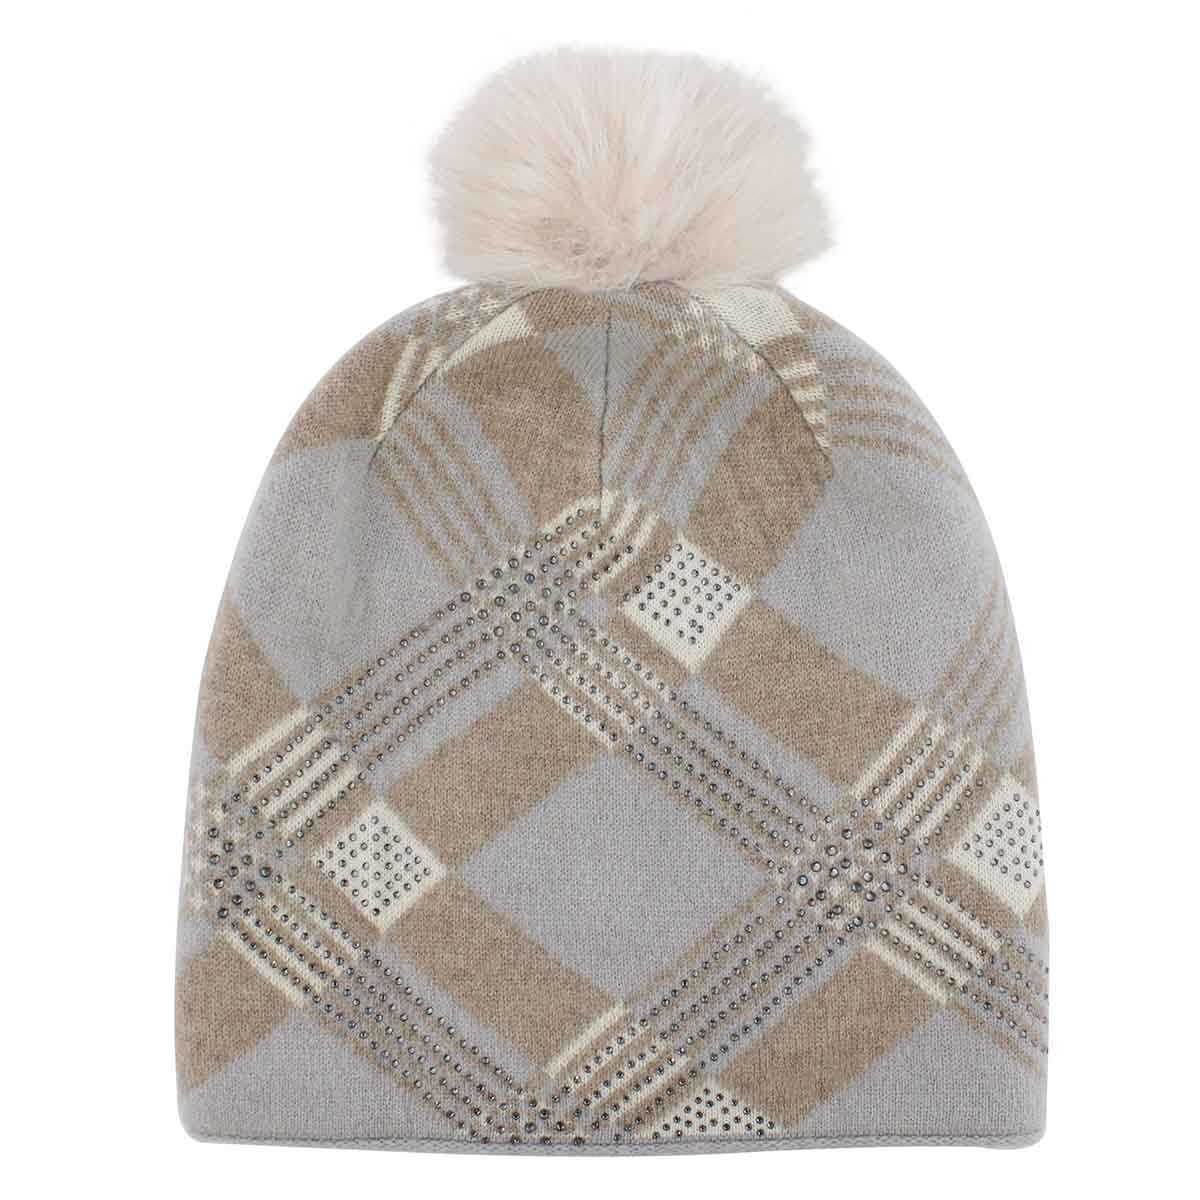 Women's PLAID w/fur pom beige/grey hats